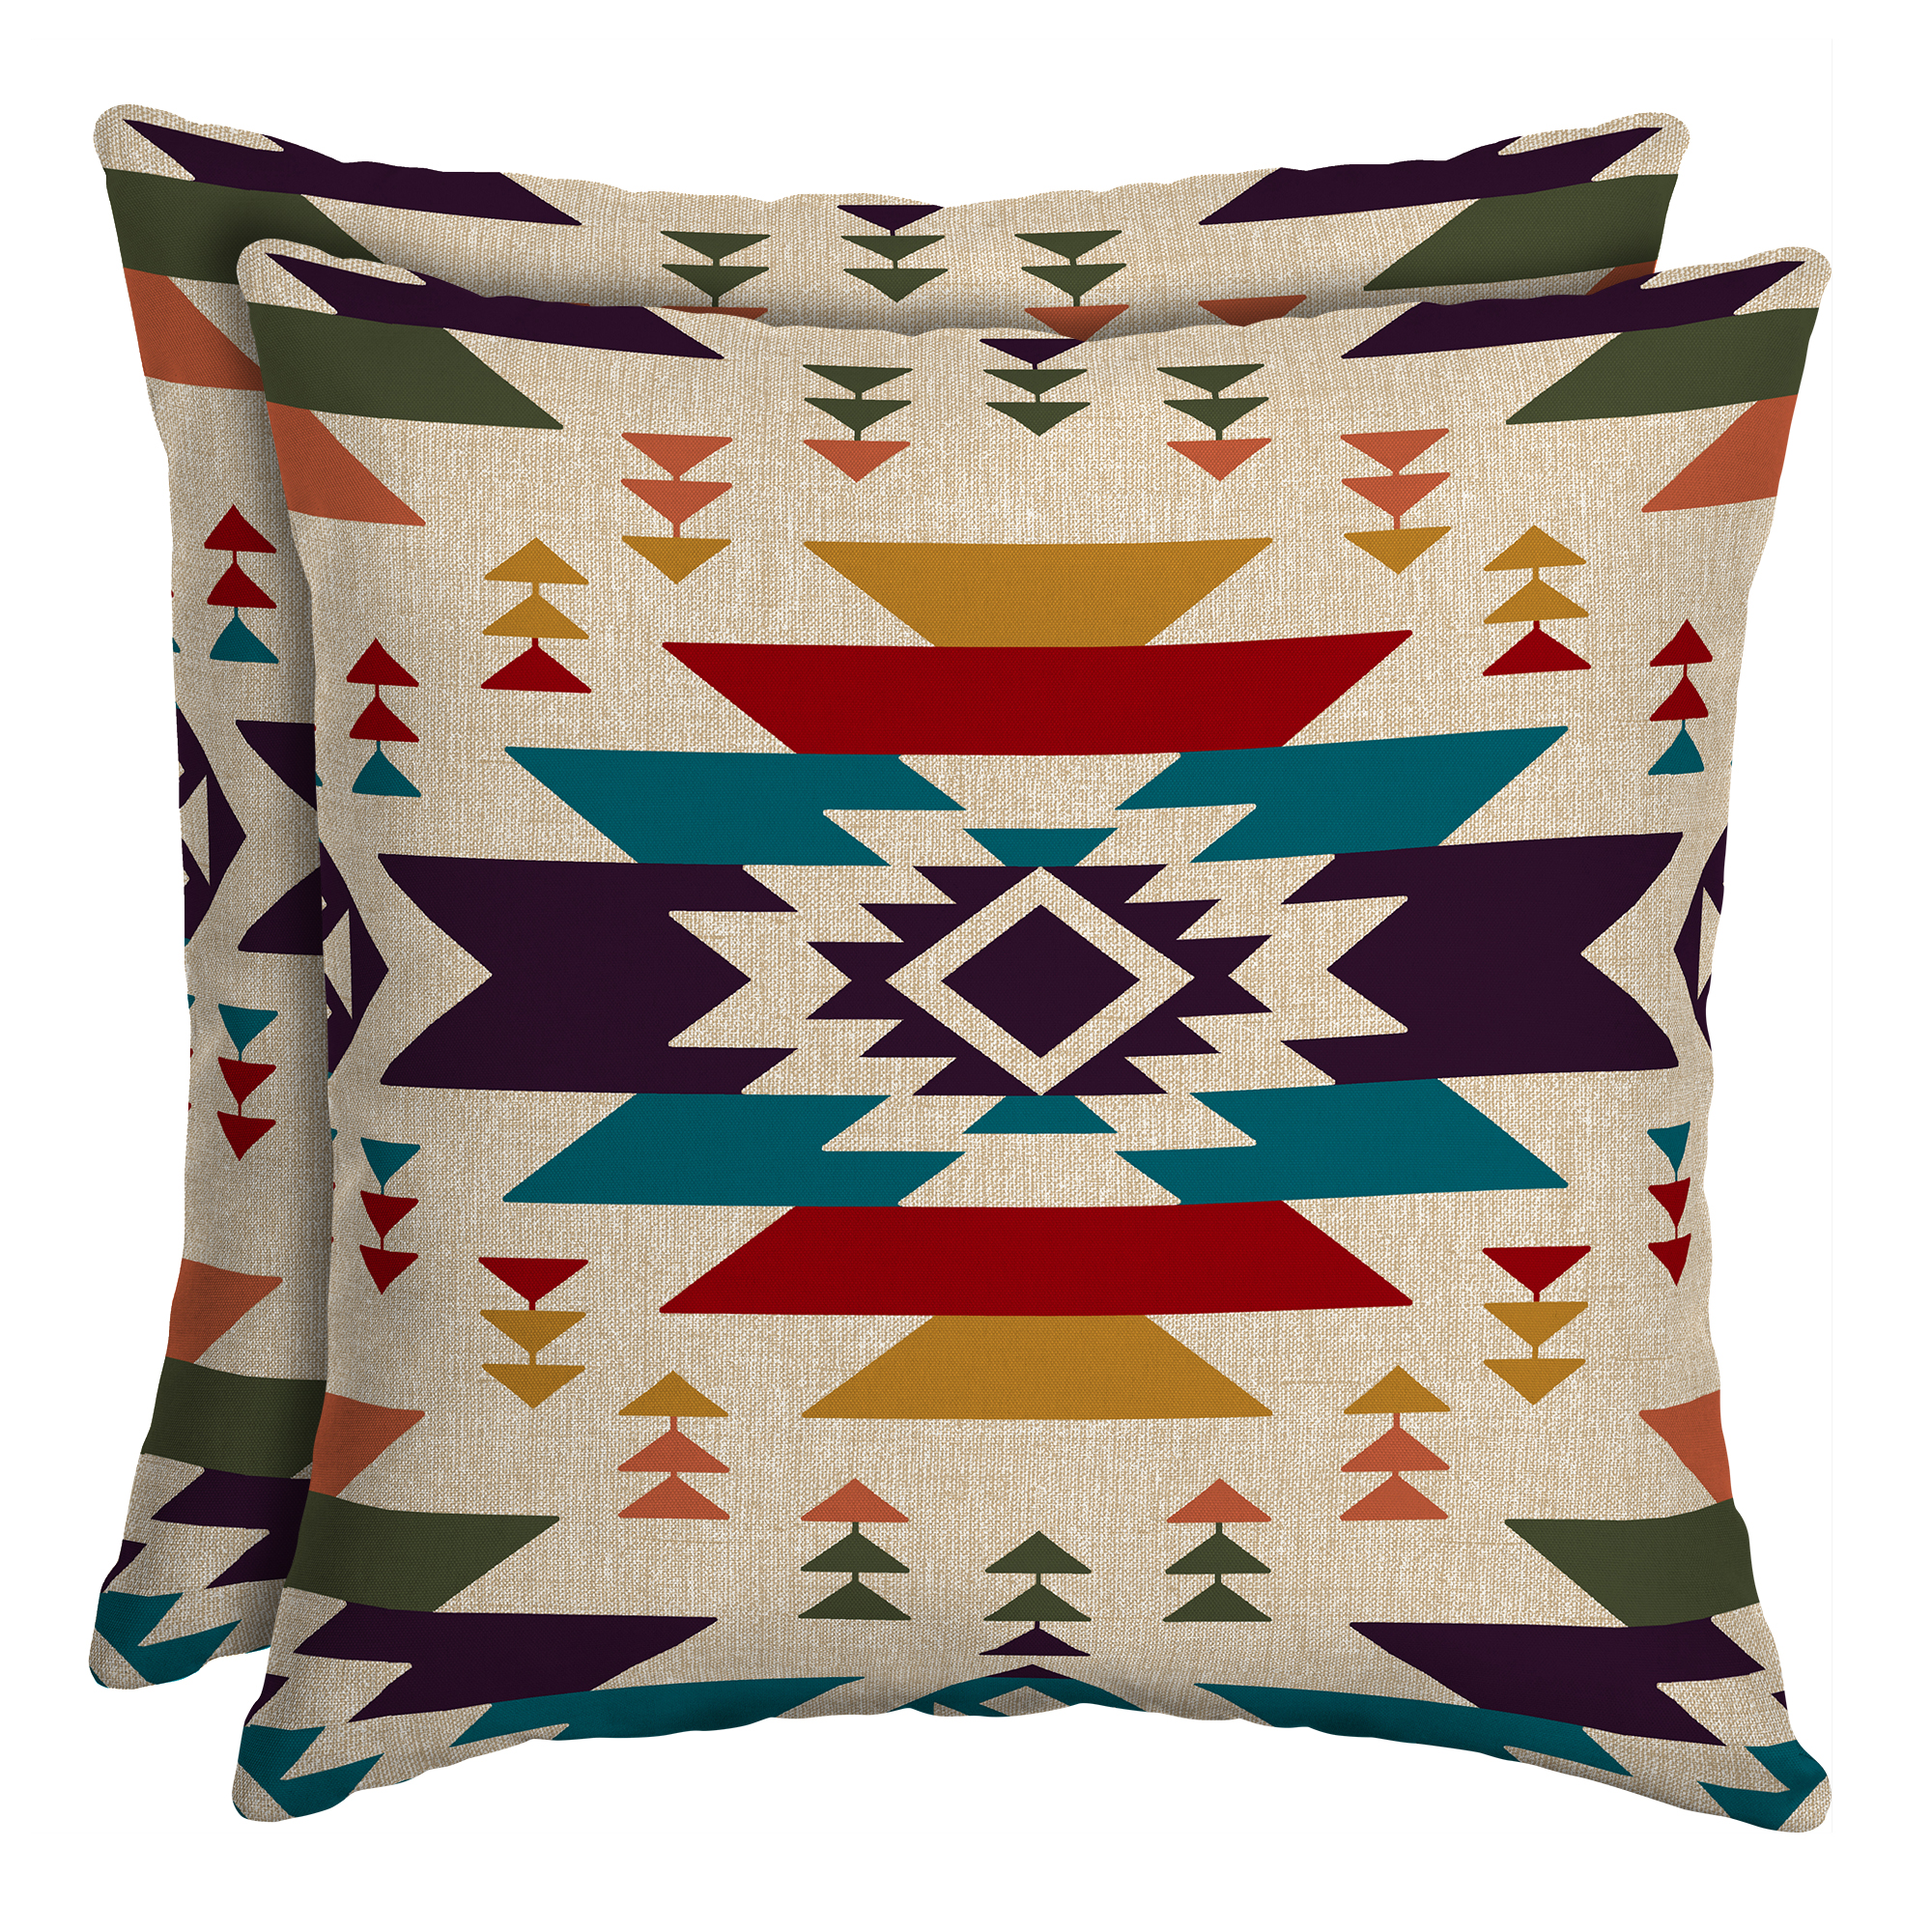 Purchase > walmart patio pillows, Up to 20 OFF